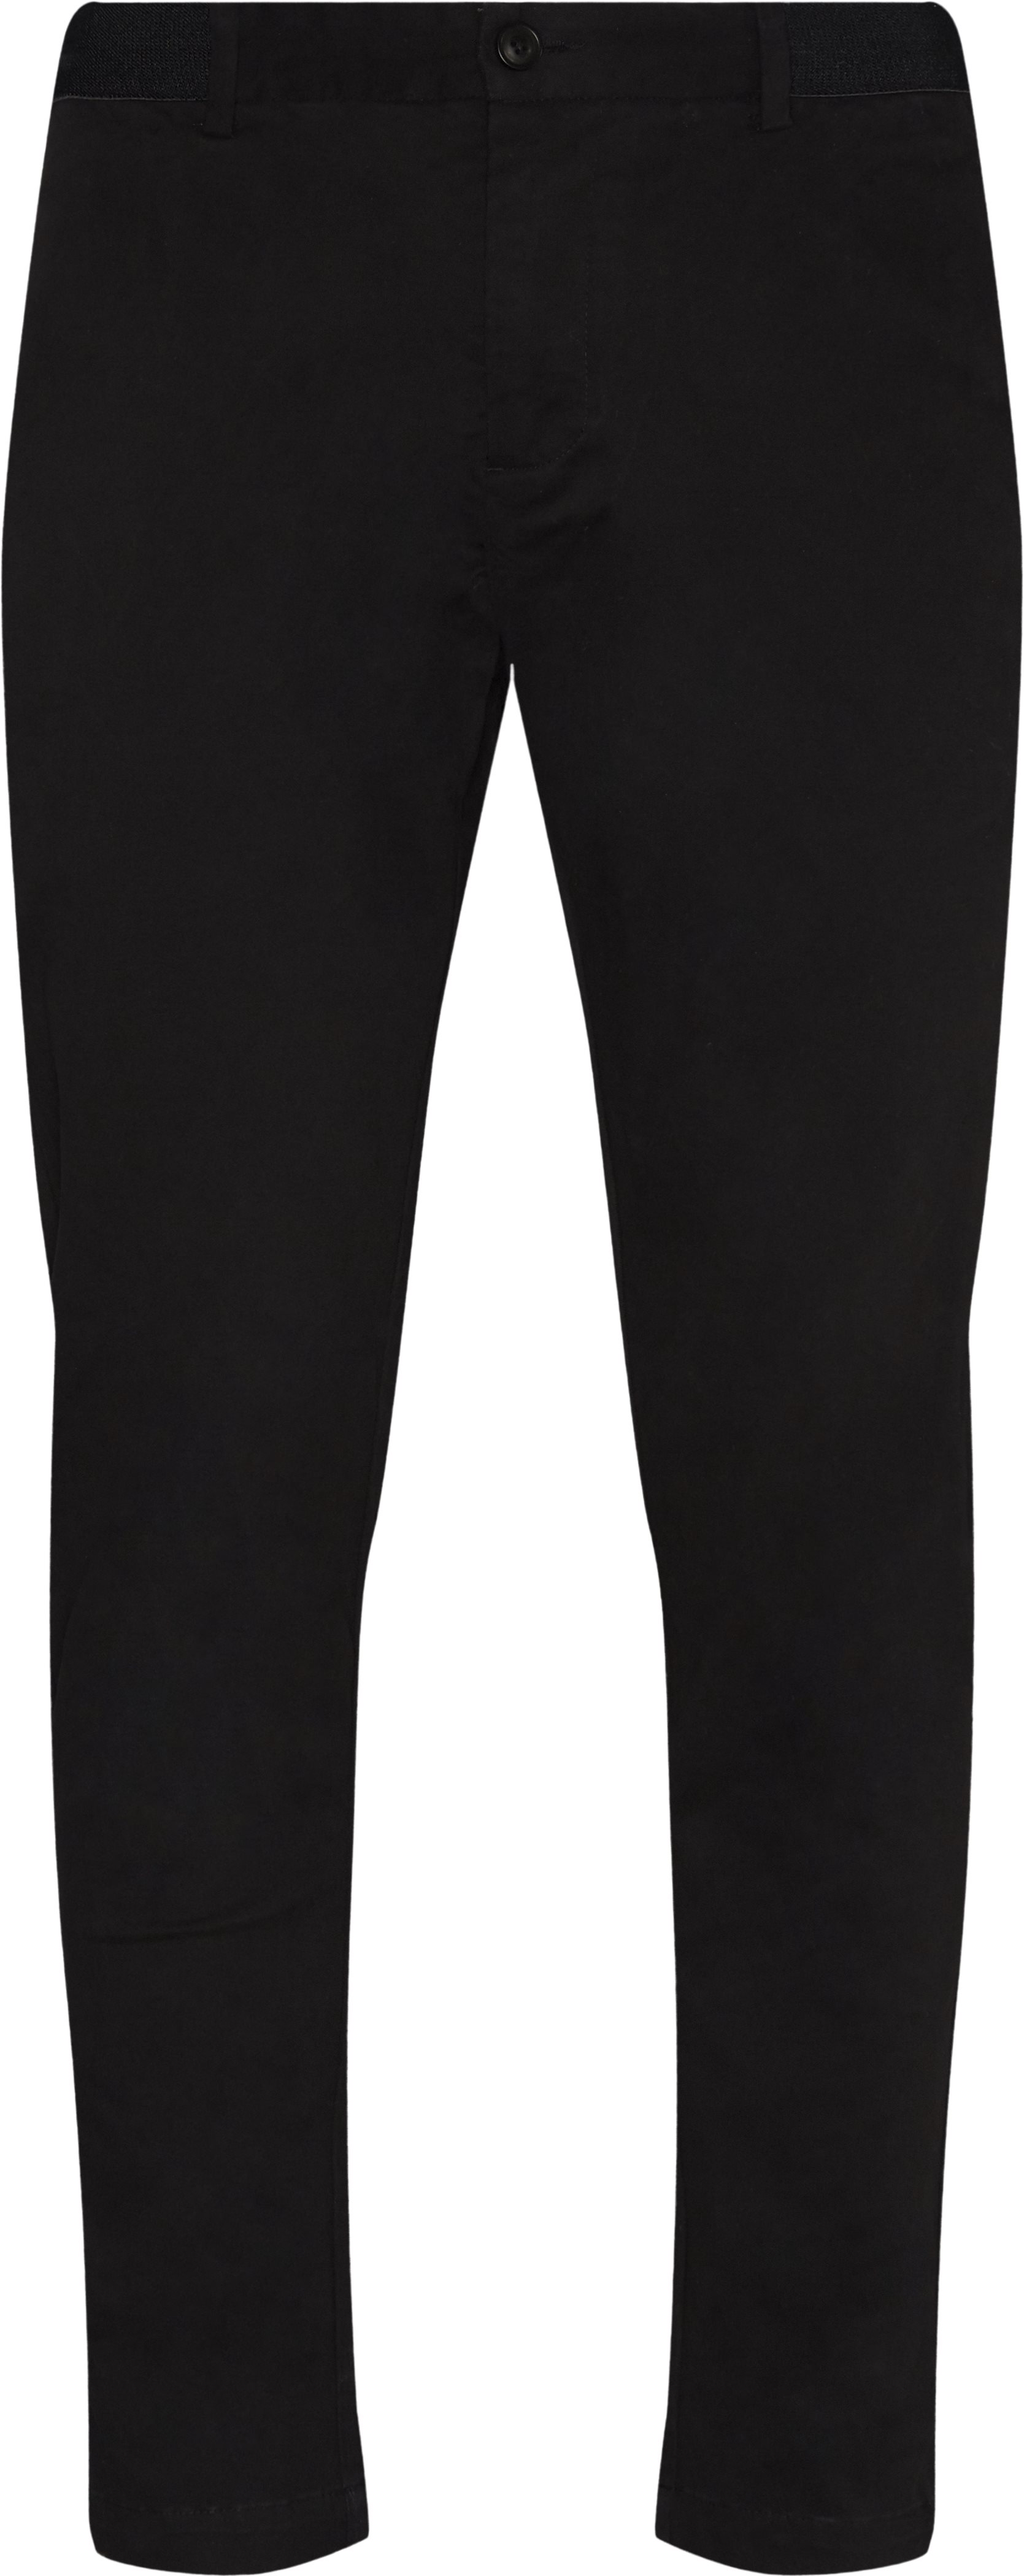 Century Trousers - Bukser - Tapered fit - Sort